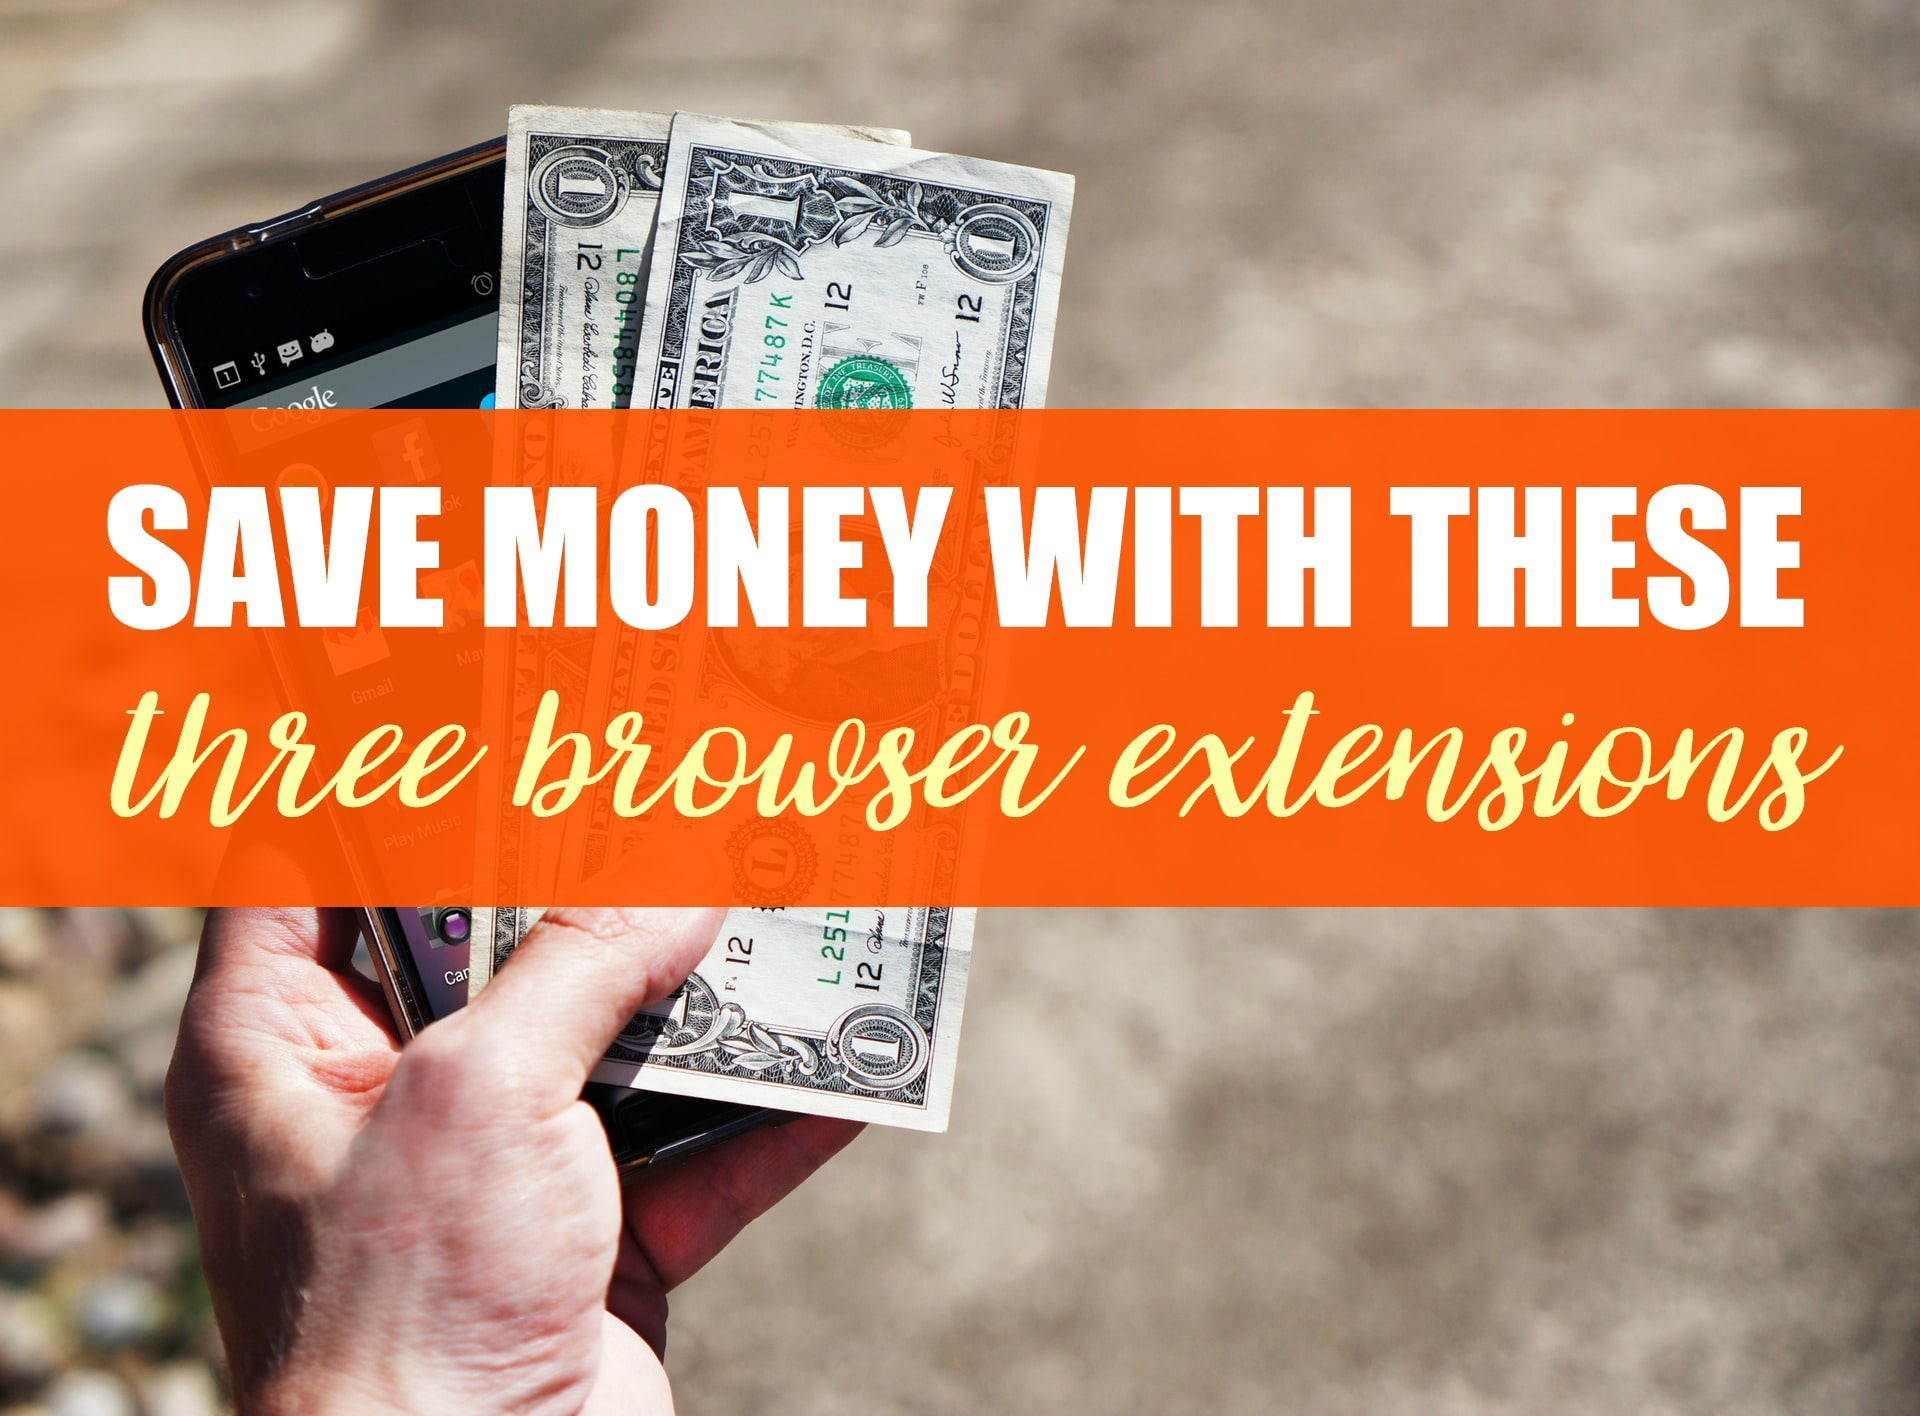 Save Money With These Three Browser Extensions